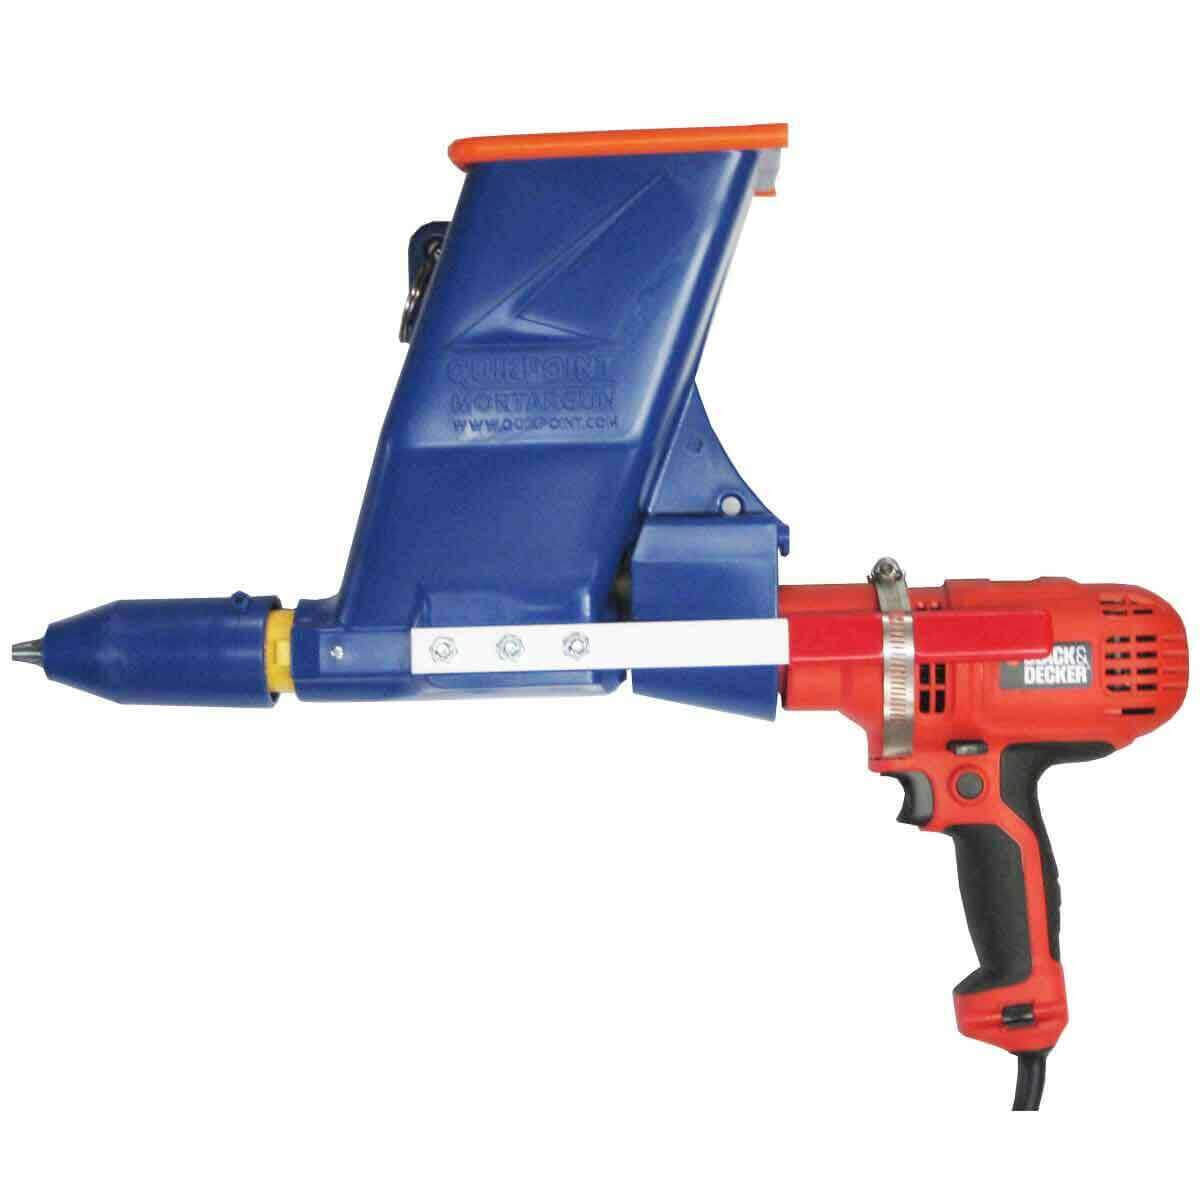 Quikpoint Mortar Gun with Black and Decker Drill